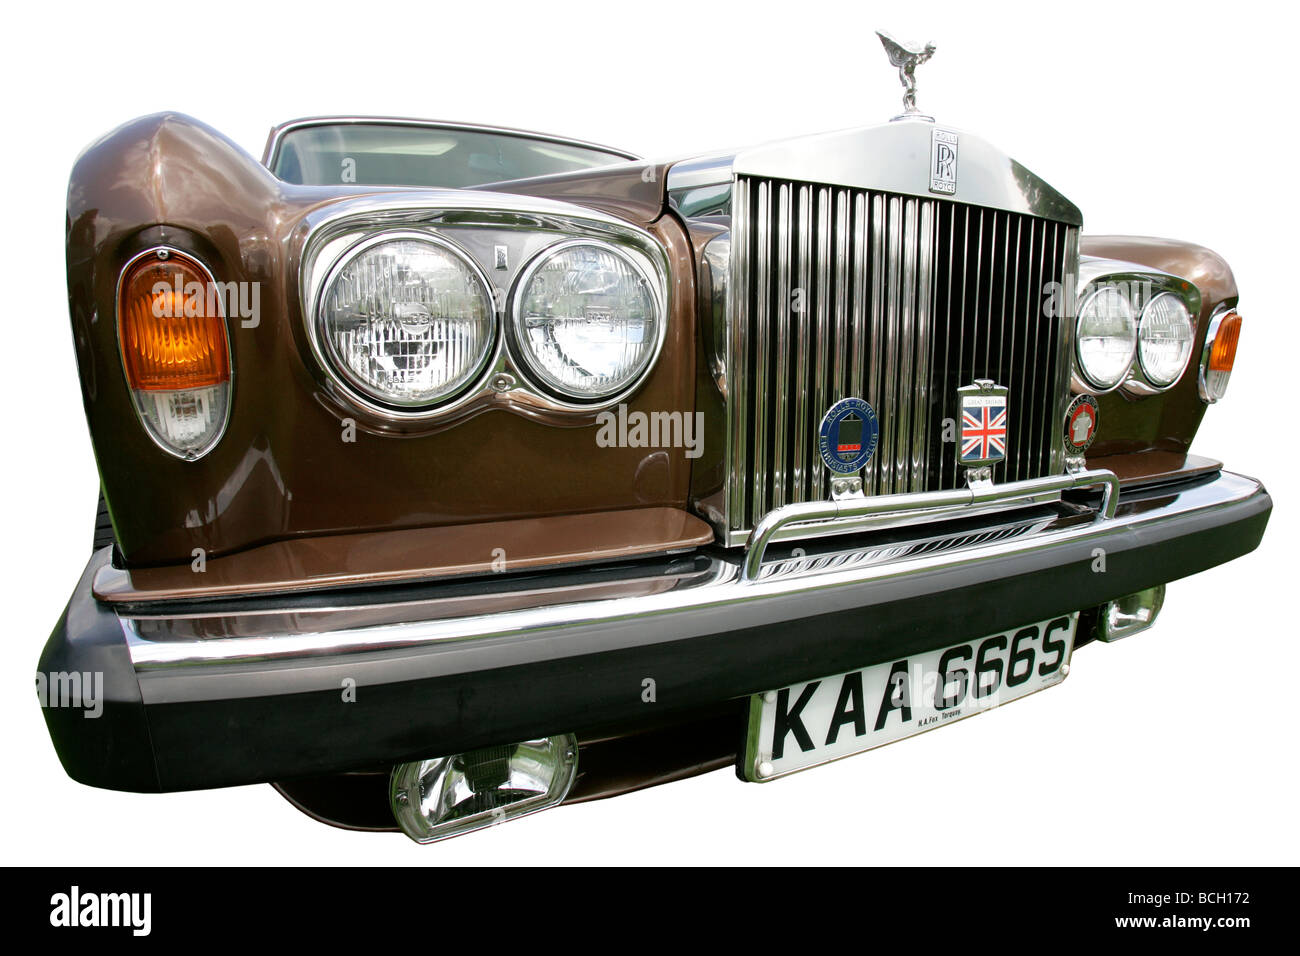 American car old classic history vehicle vintage antipodes symbol ...